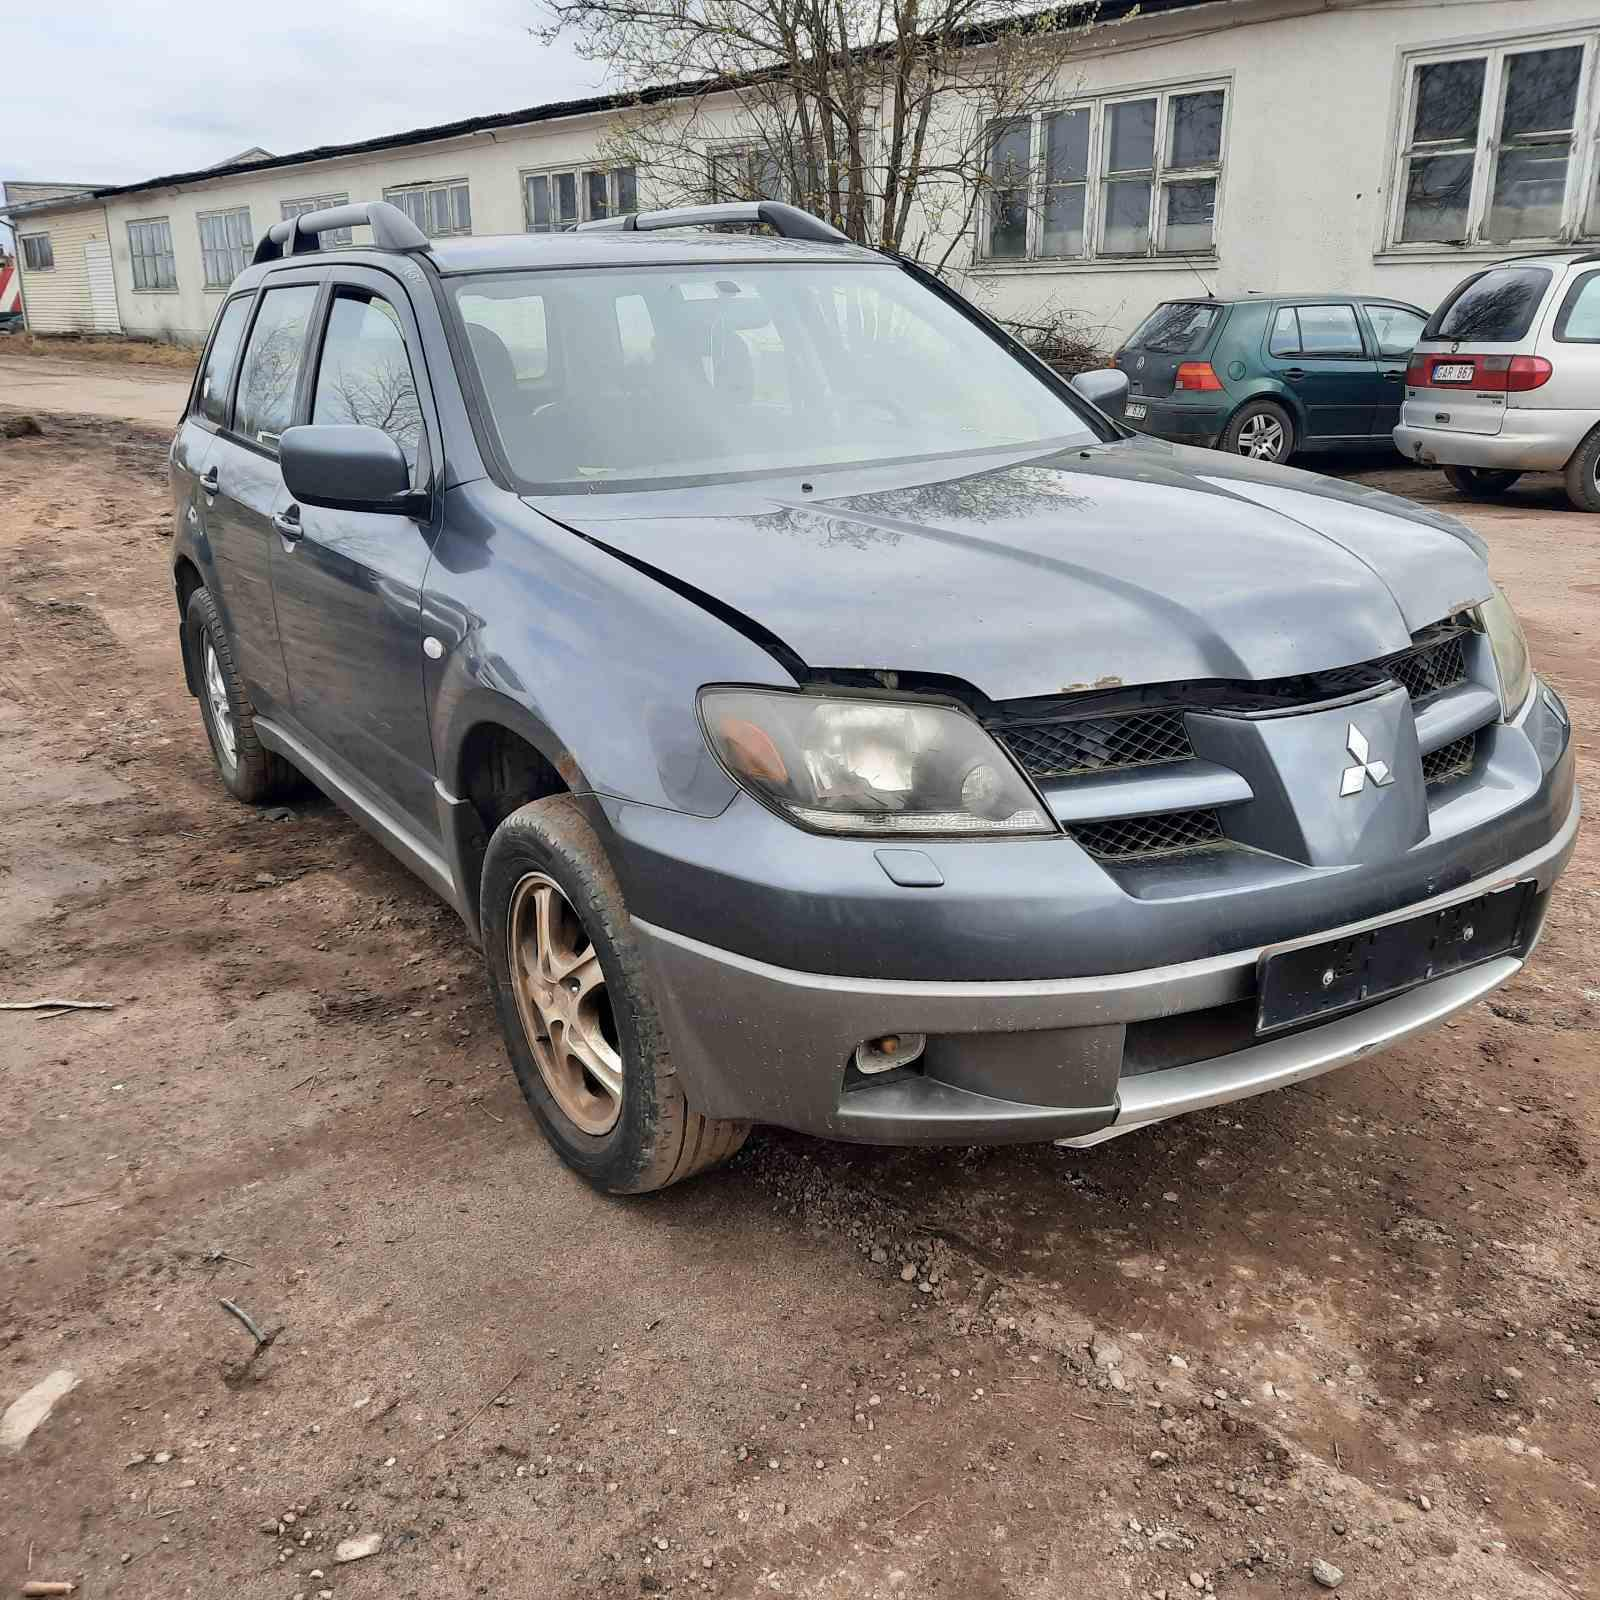 Used Car Parts Mitsubishi OUTLANDER 2003 2.0 Mechanical Jeep 4/5 d. Blue 2021-4-16